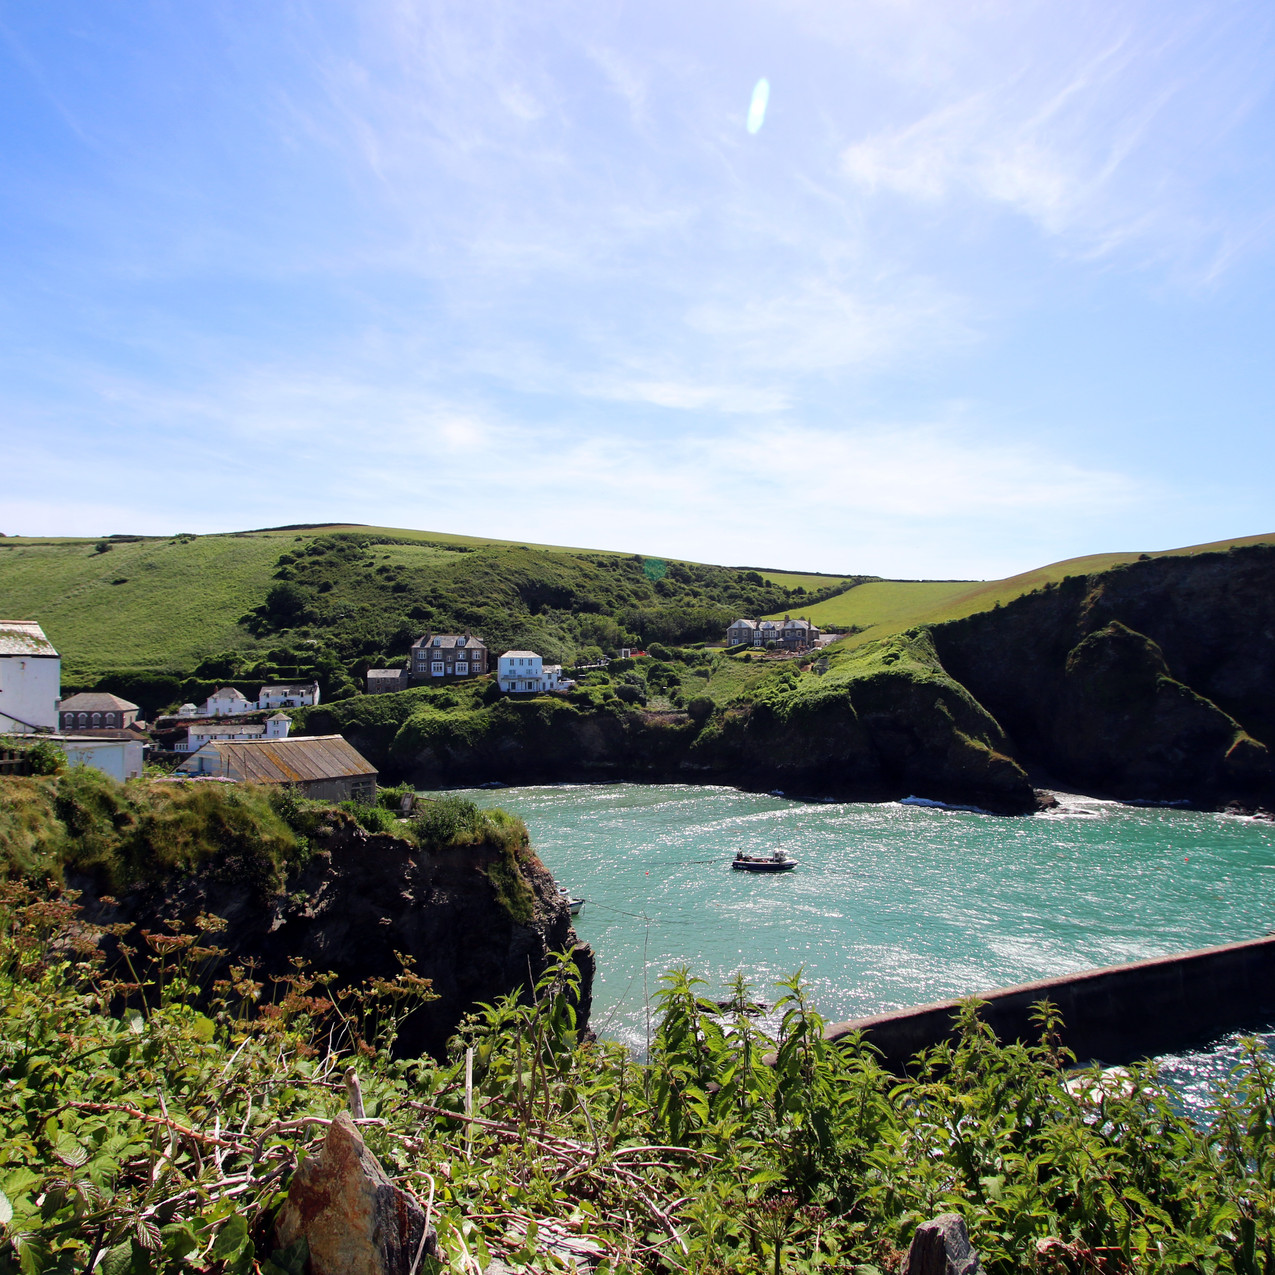 Port Isaac, filming location for the ITV show Doc Martin.